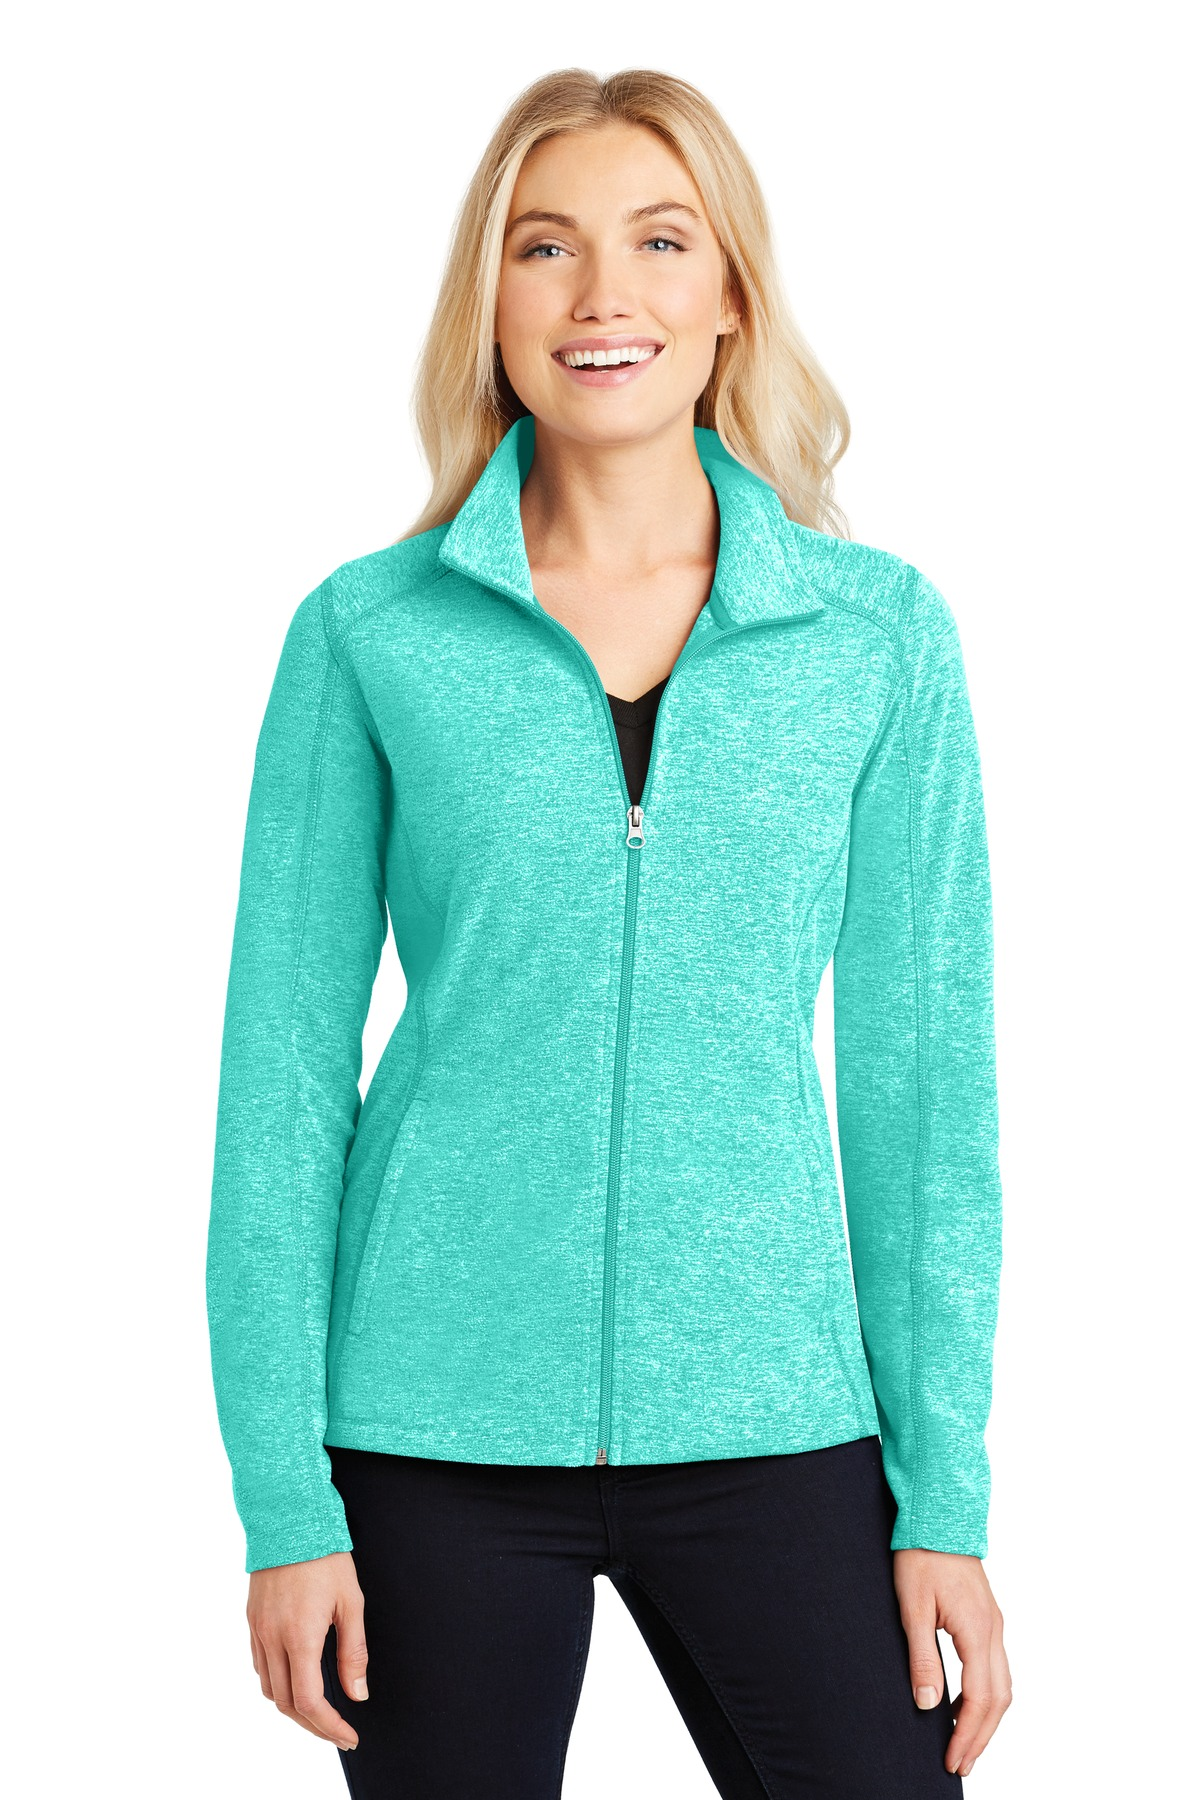 Port Authority® Ladies Heather Microfleece Full-Zip Jacket.-